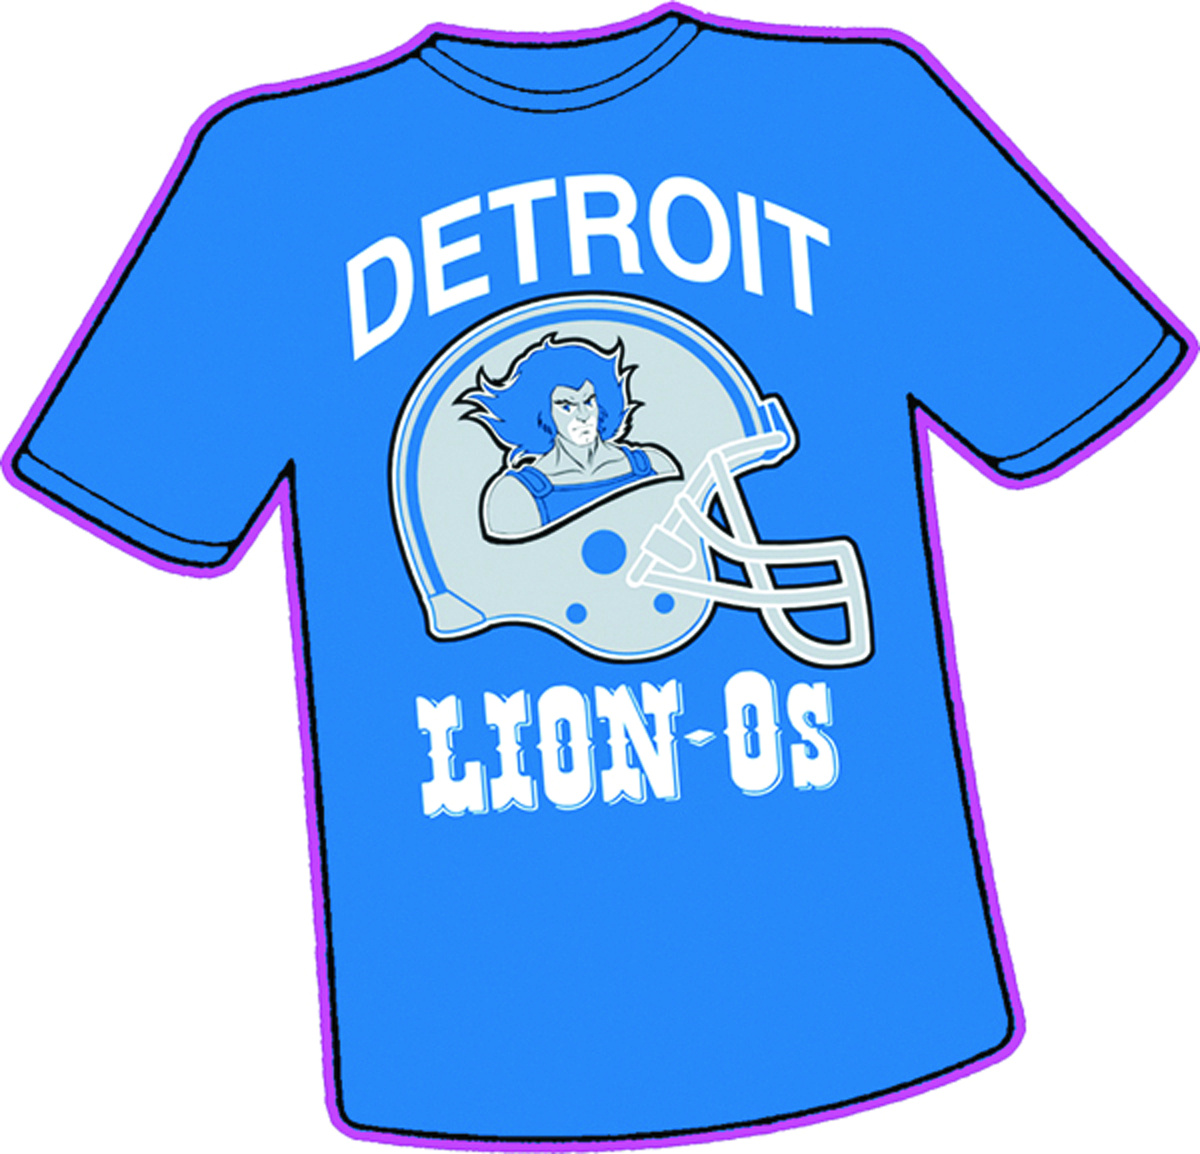 DETROIT LION-OS T/S XL